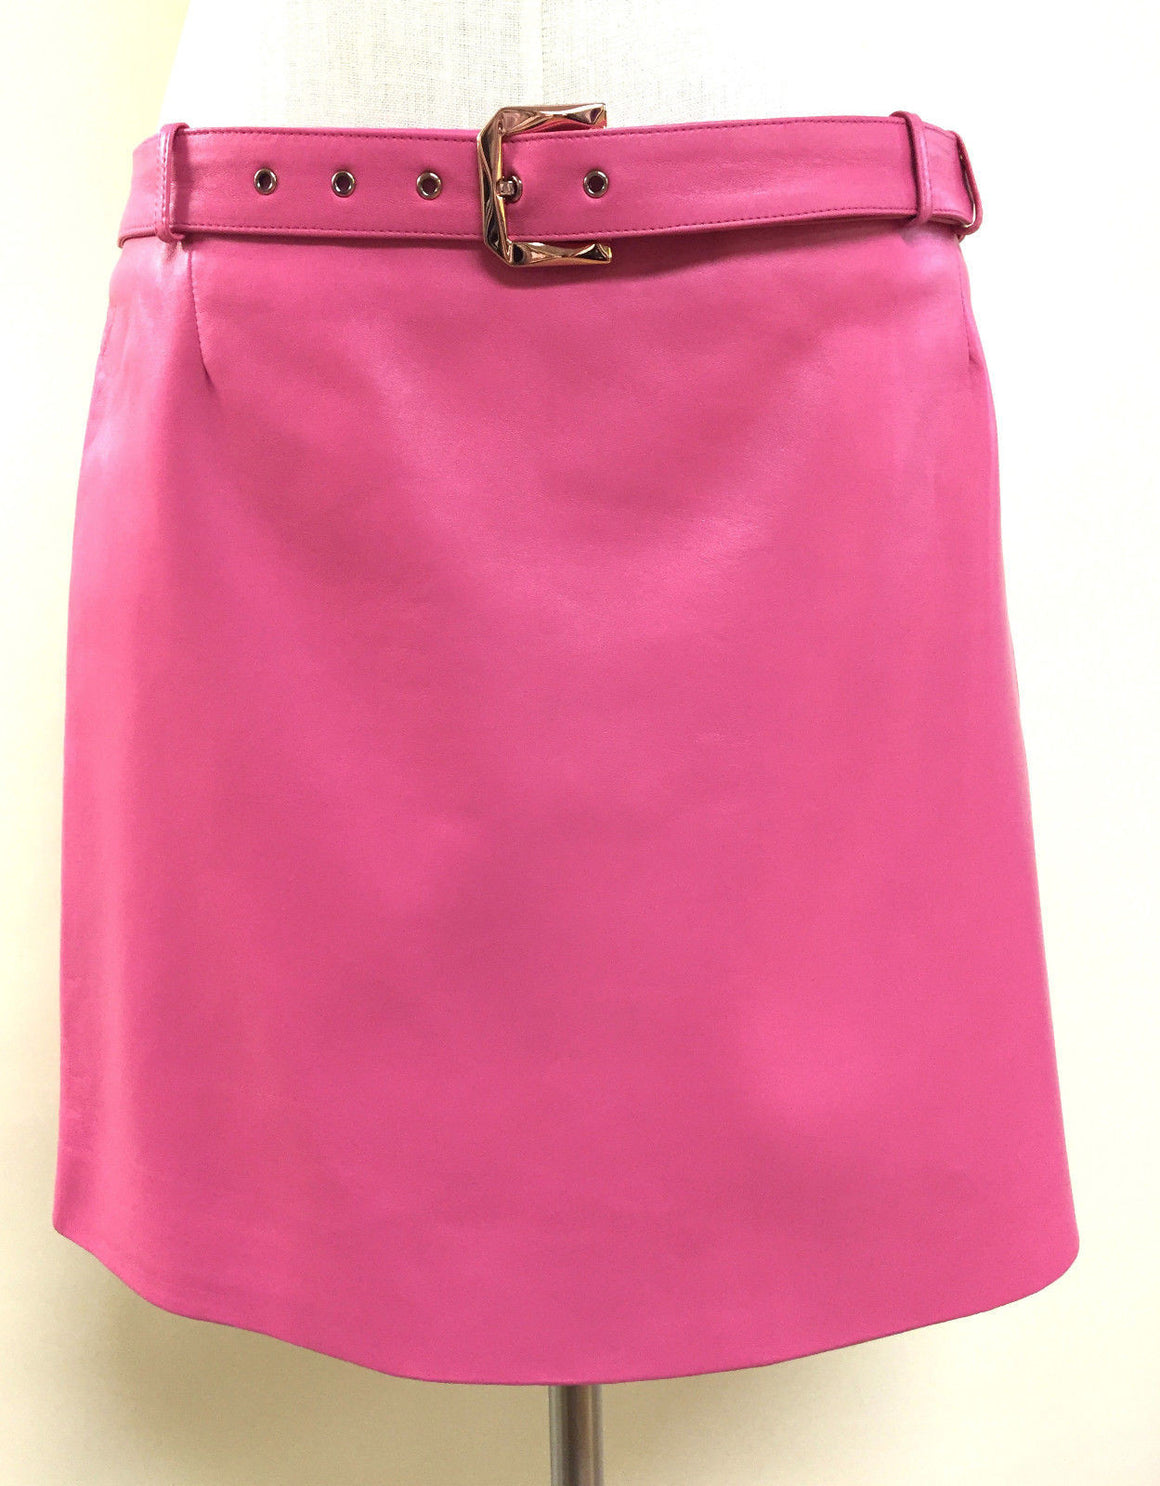 bisbiz.com VERSACE NEW Bubblegum Pink Leather A-Line Belted Skirt Size: IT40 / US6 - Bis Luxury Resale